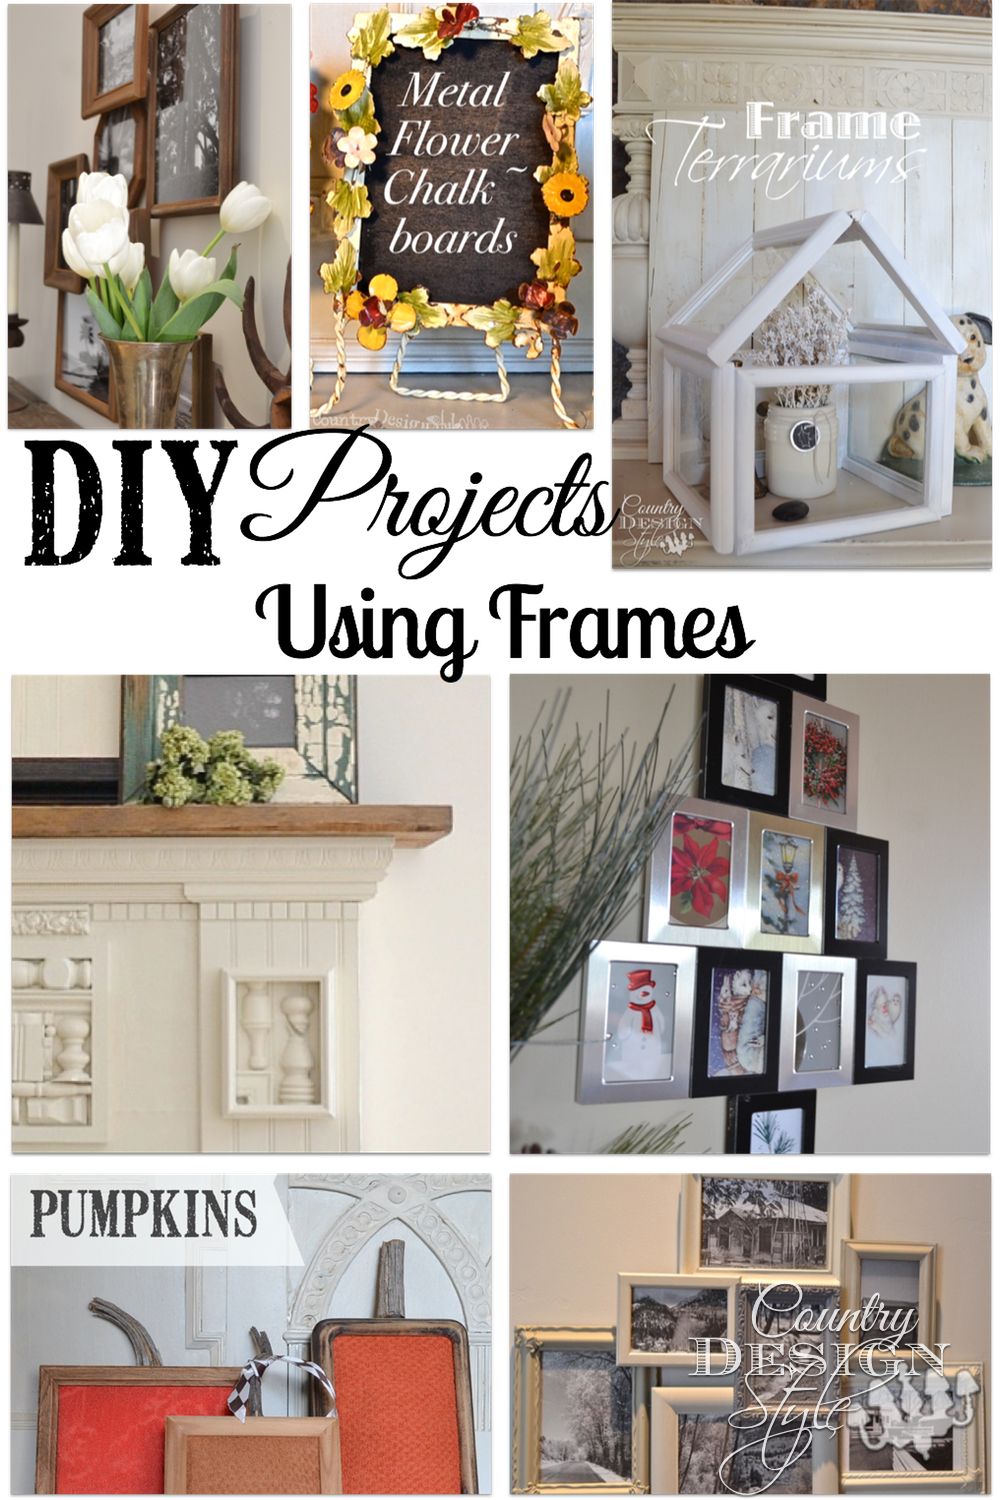 Diy Projects Picture Frames - Easy Craft Ideas